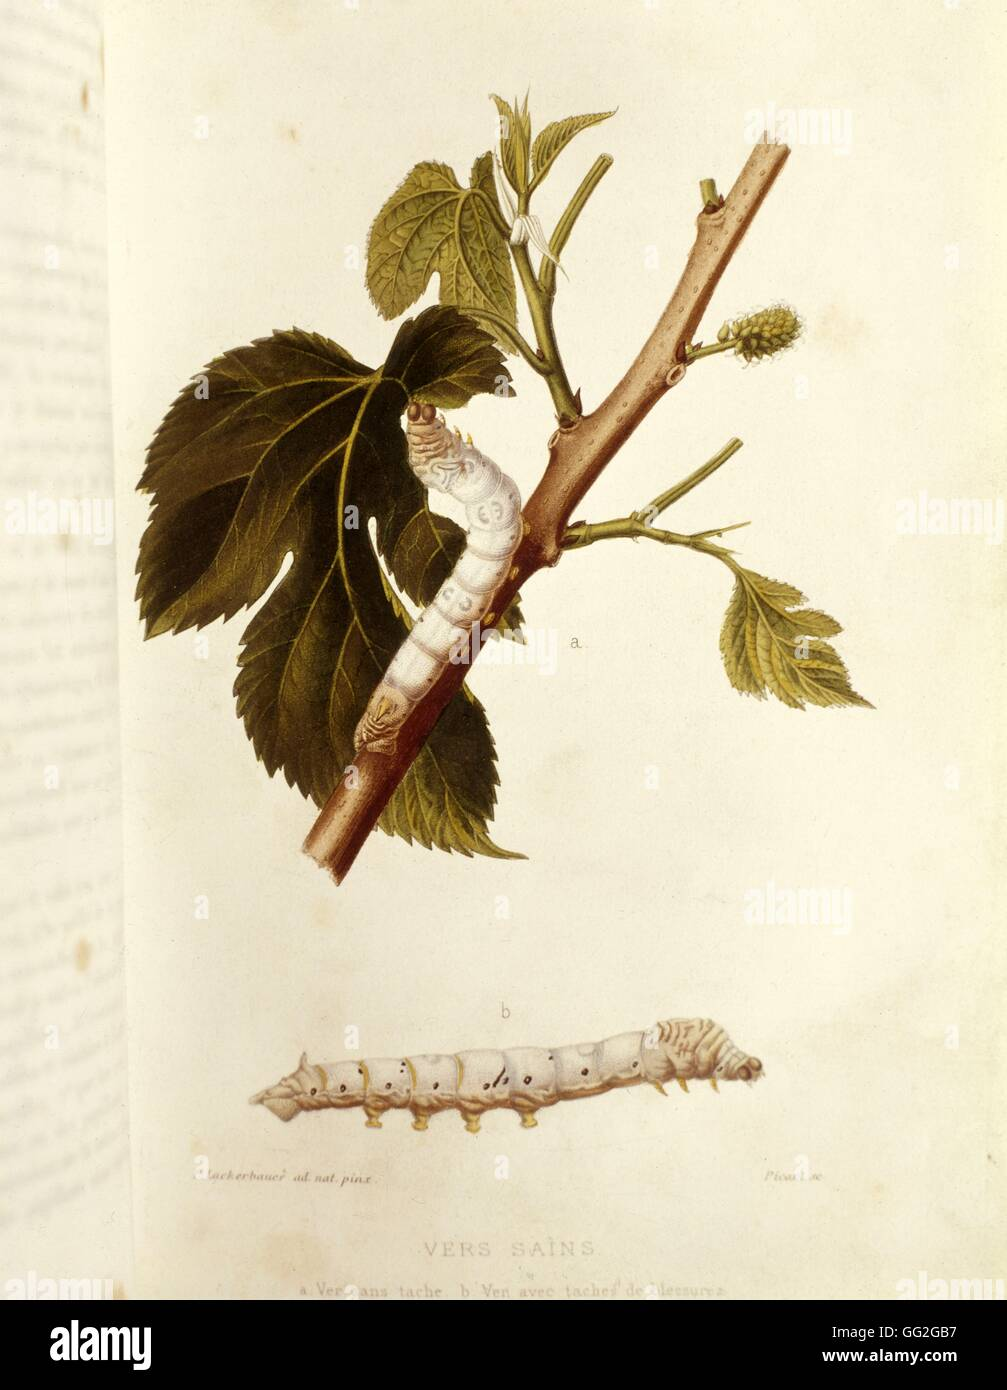 P. Lackerbauer Louis Pasteur works on silkworms diseases: healthy silk-worms 1870 Plate published in 'Maladies - Stock Image